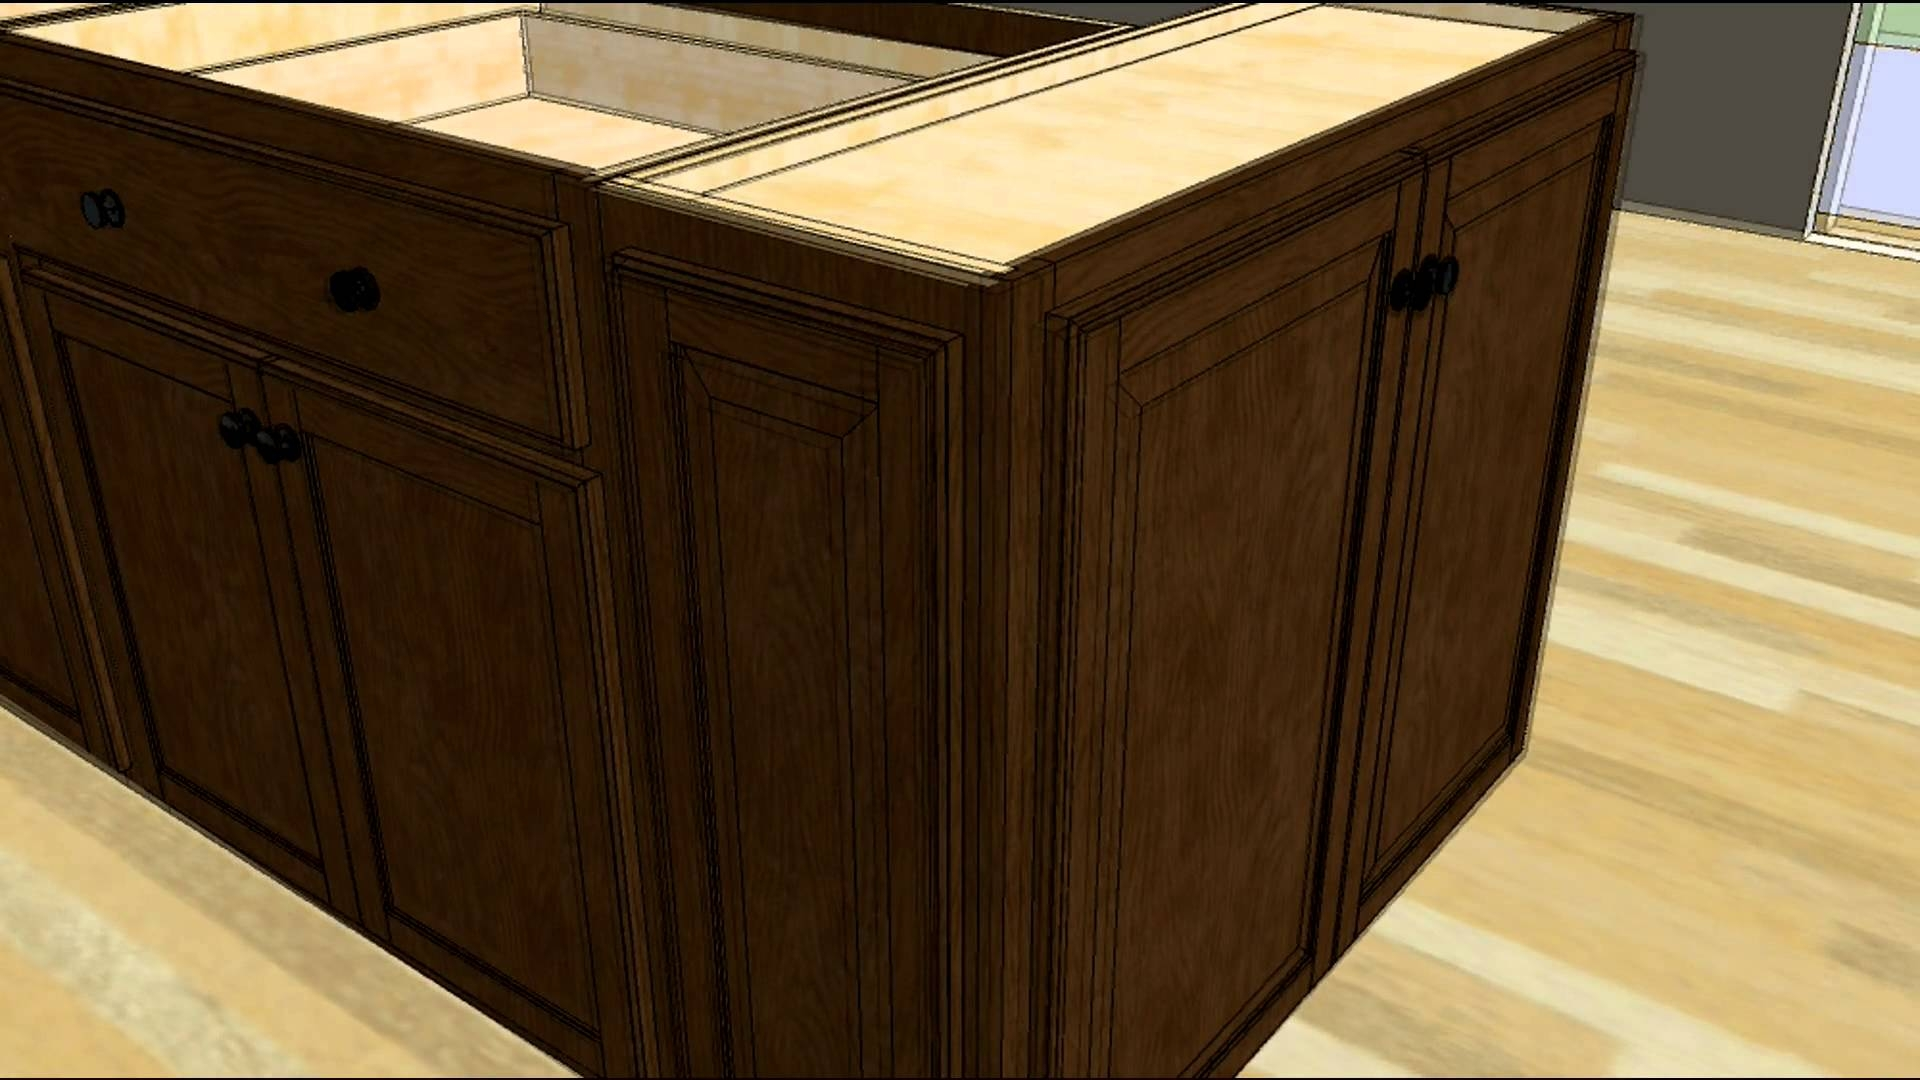 Wall Cabinet Kitchen Islandkitchen design tip designing an island with wall cabinet ends